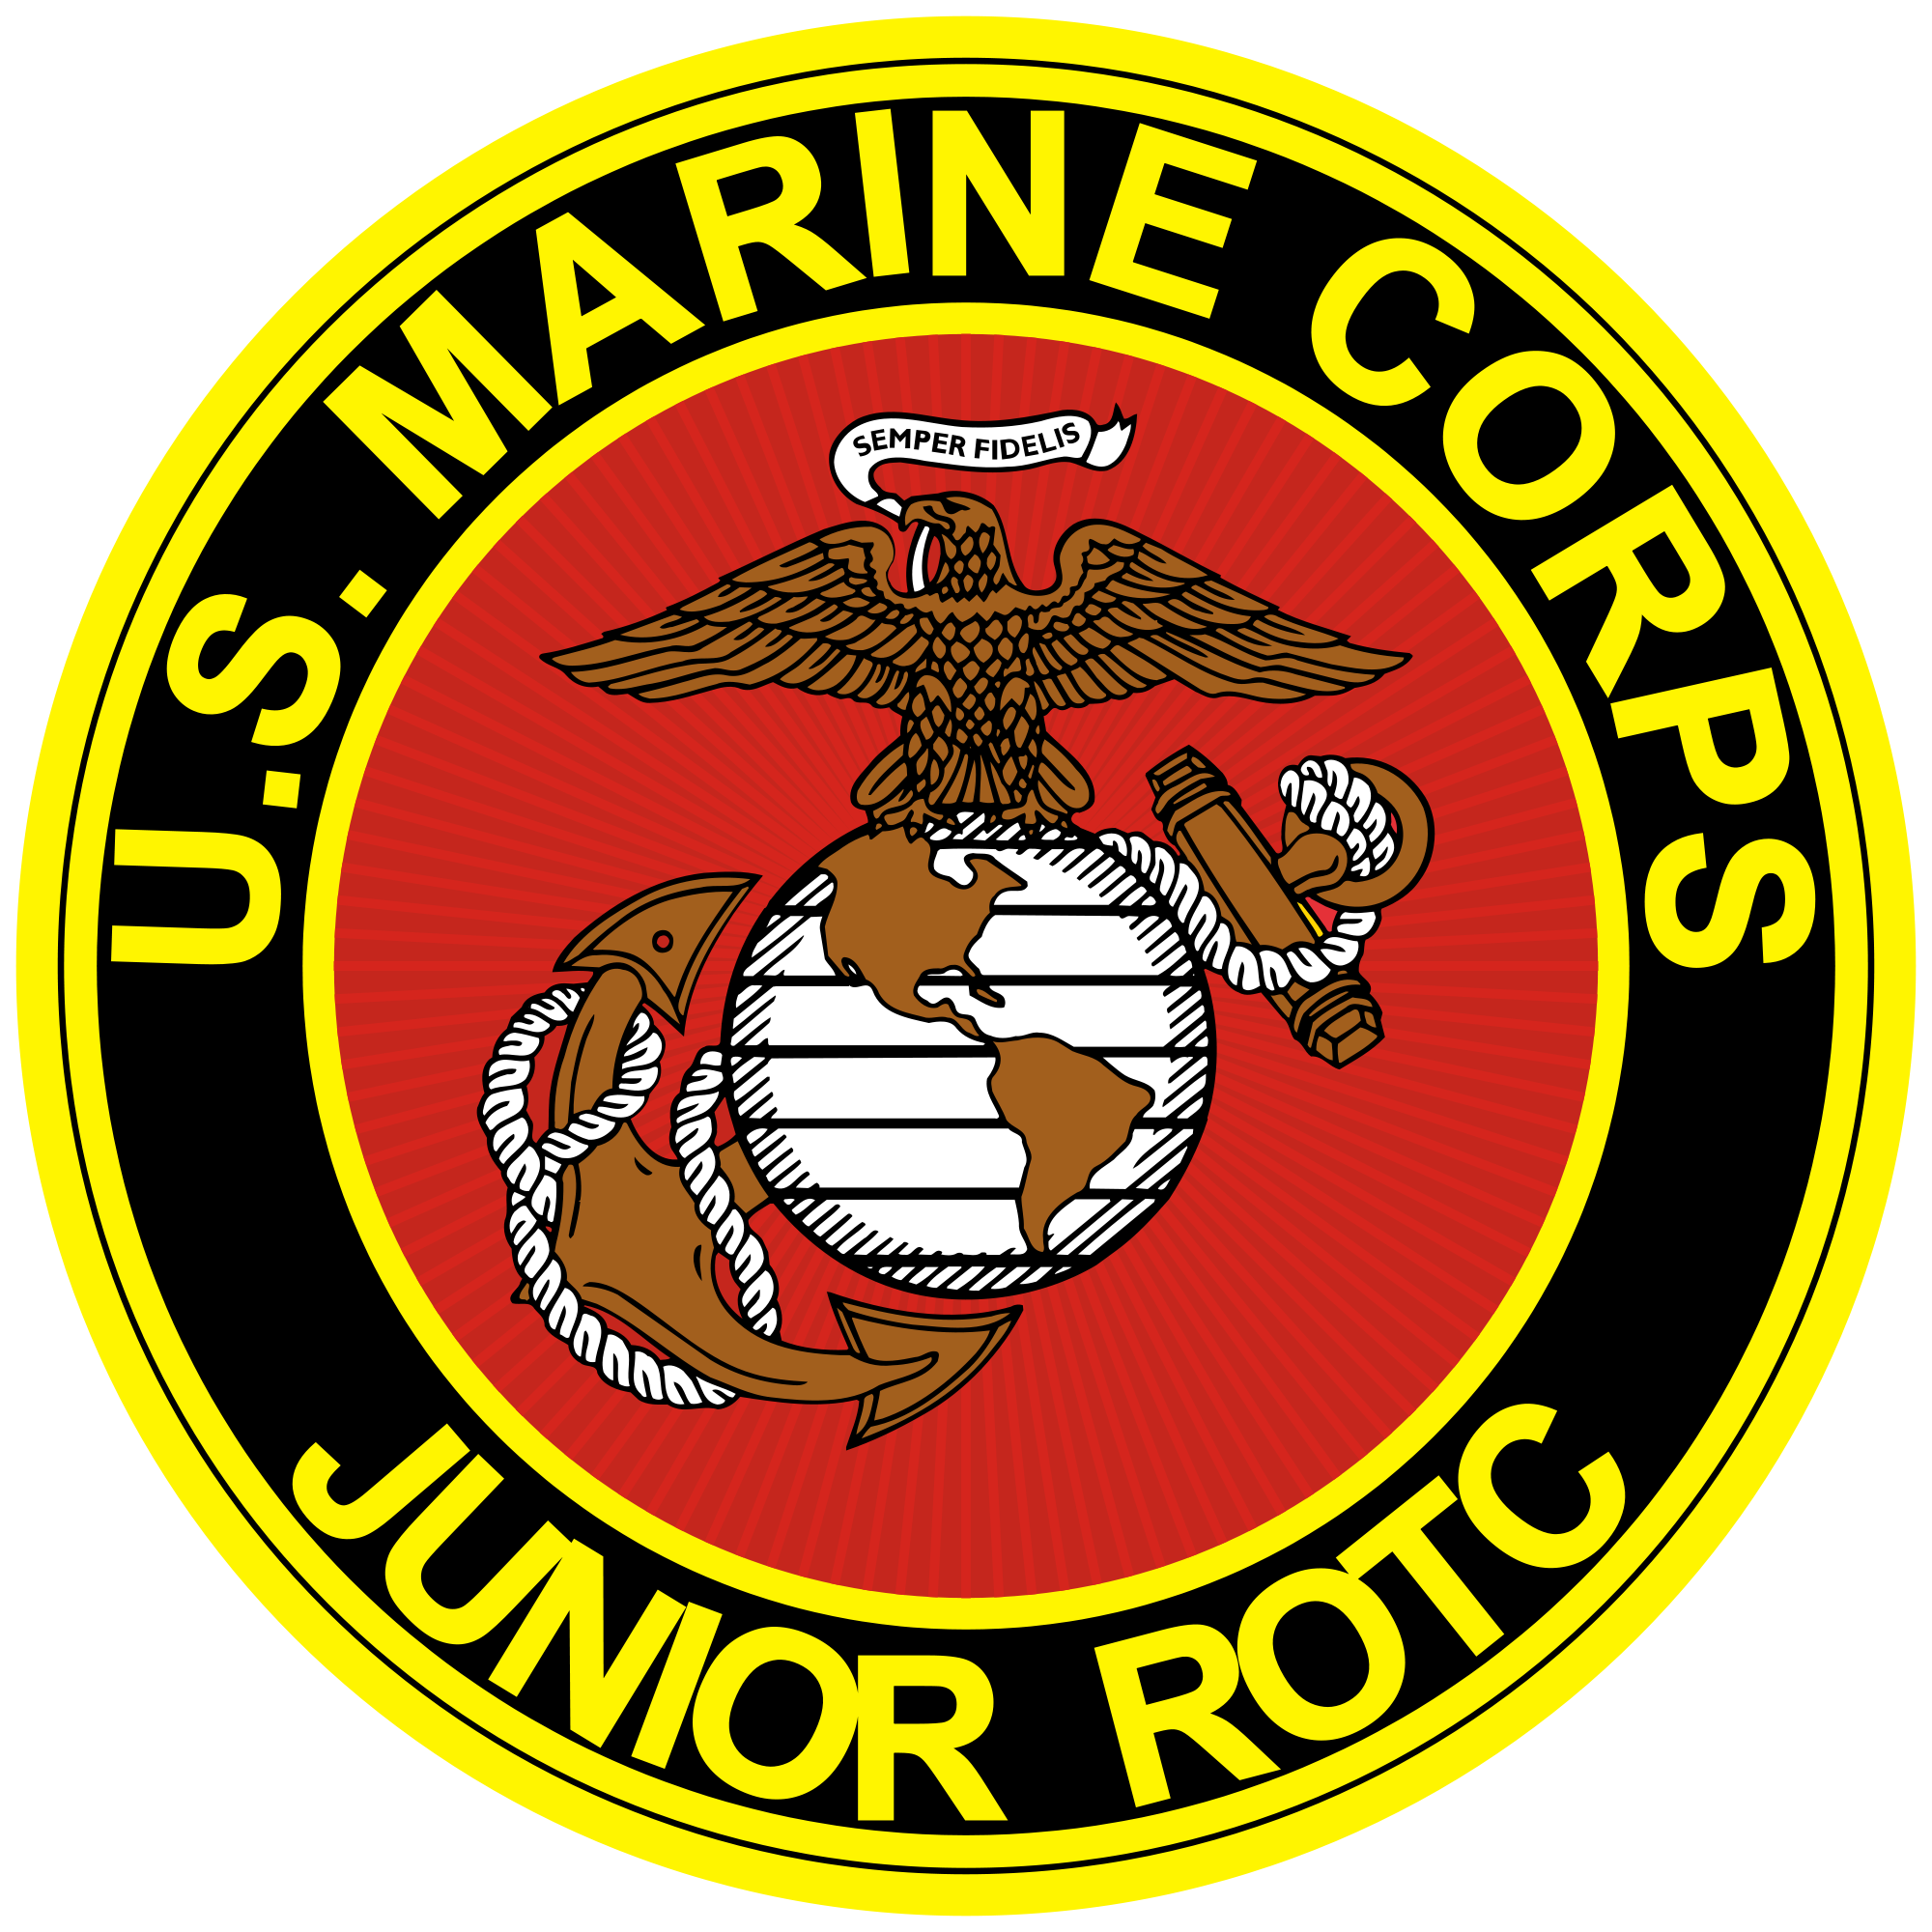 atlanta moaa usmc jrotc army jrotc login army rotc logo patch images